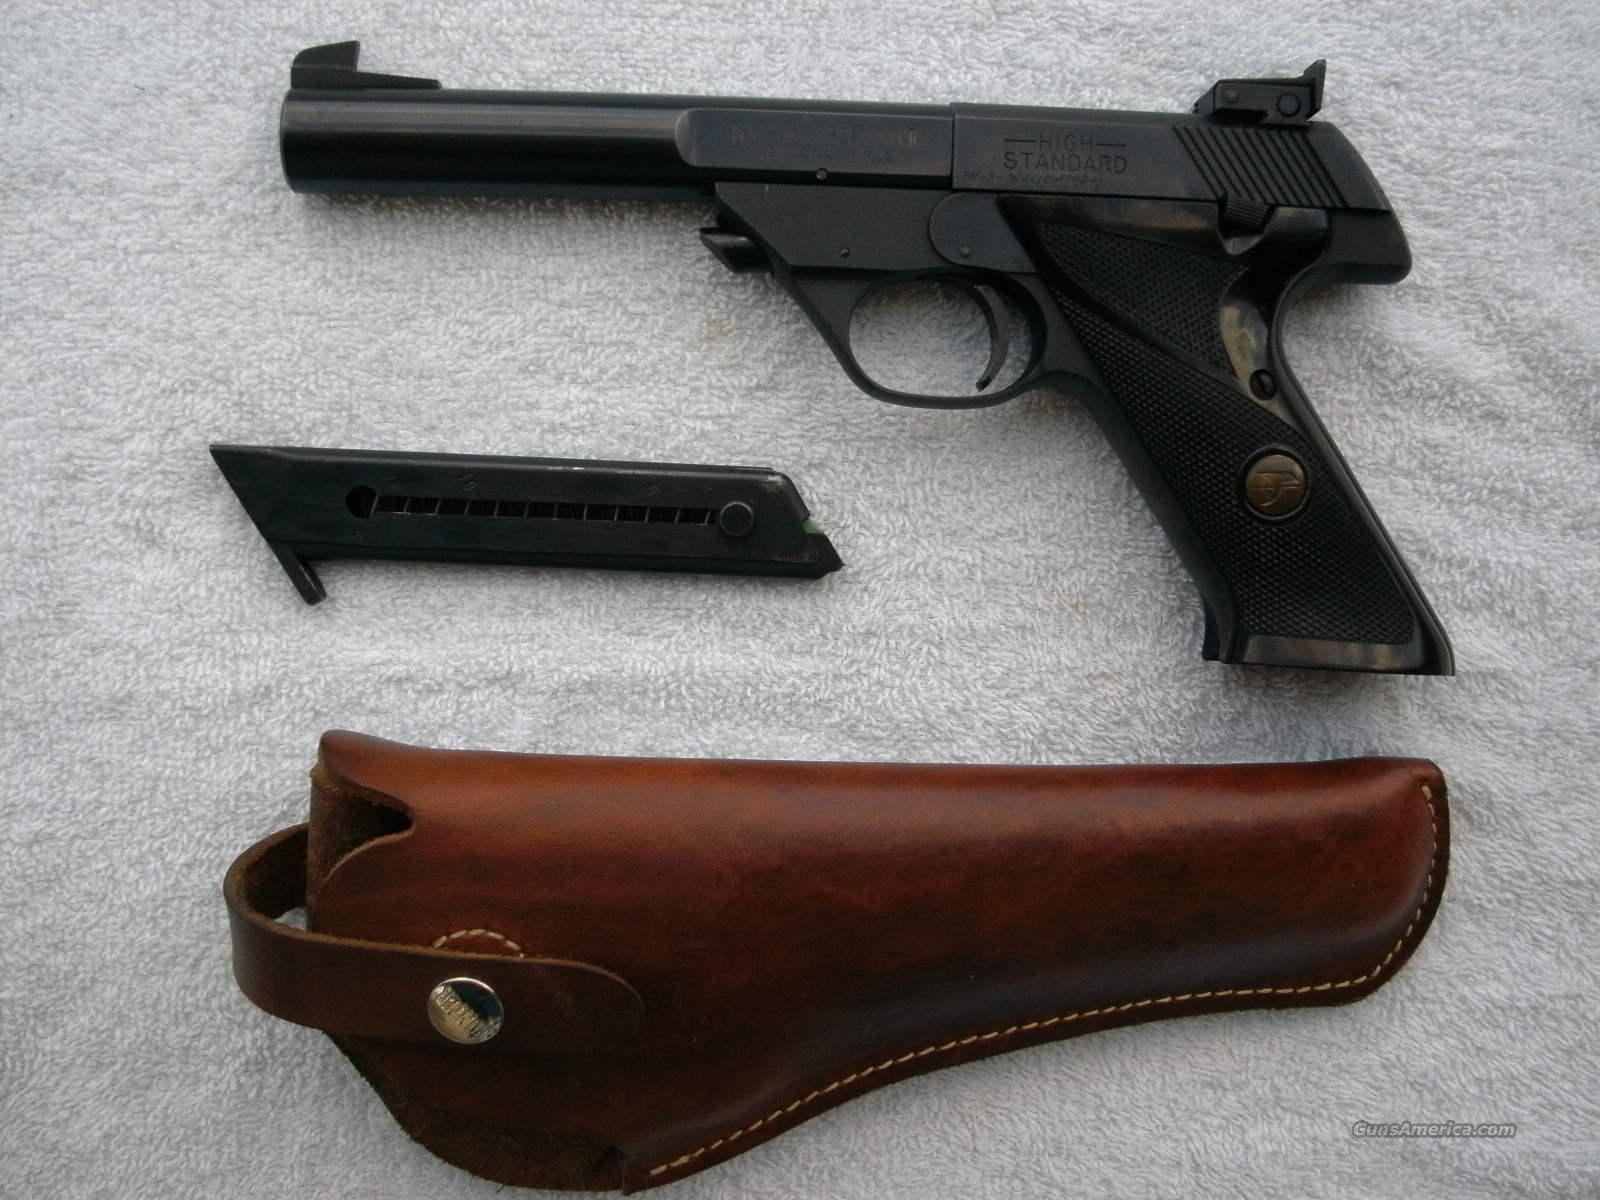 High Standard Sharpshooter .22 cal pistol  Guns > Pistols > High Standard Pistols